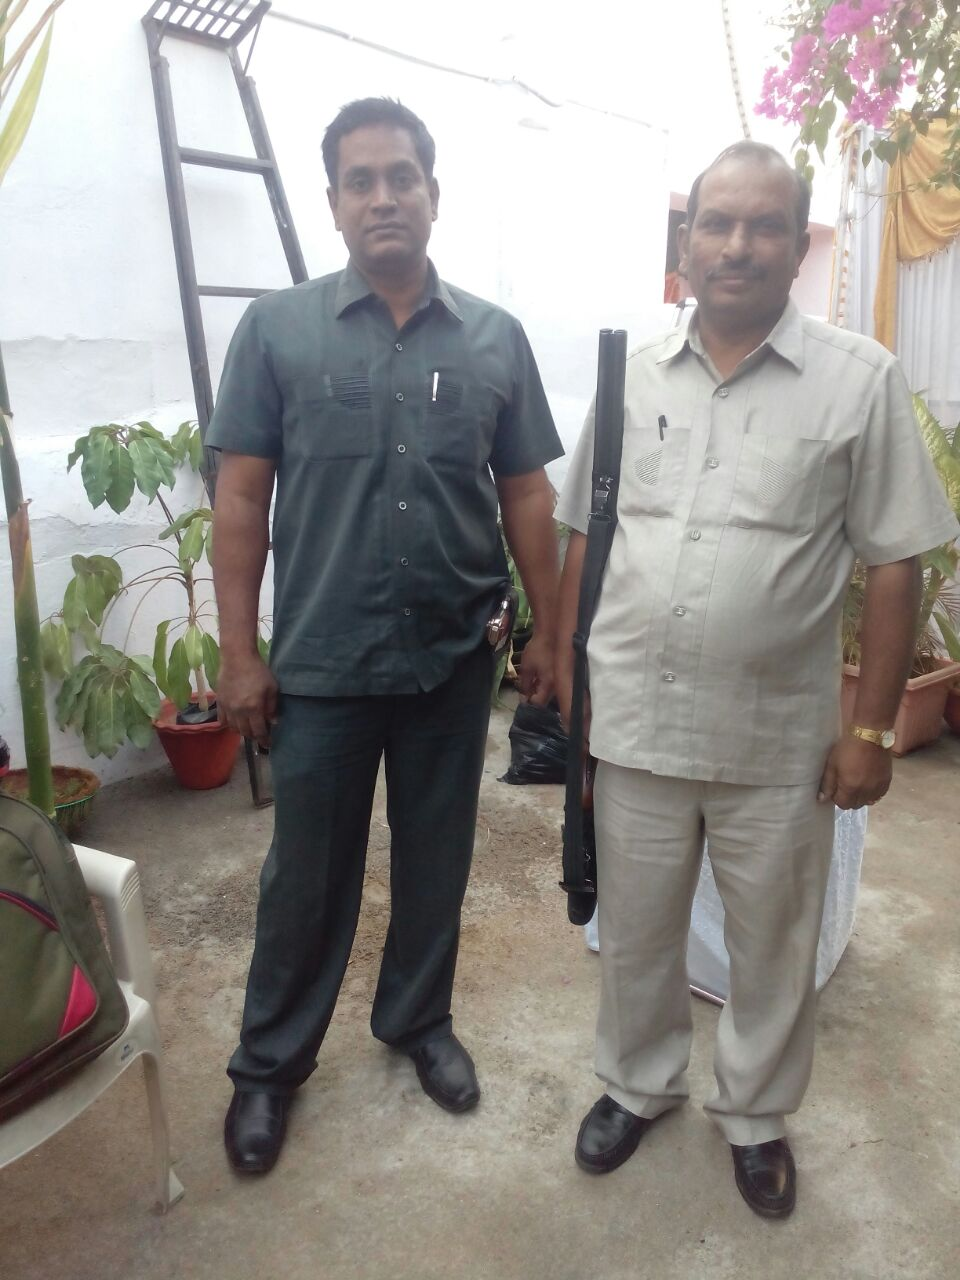 Armed Bodyguards Ex-Servicemen and Bodyguard Bouncers for ...